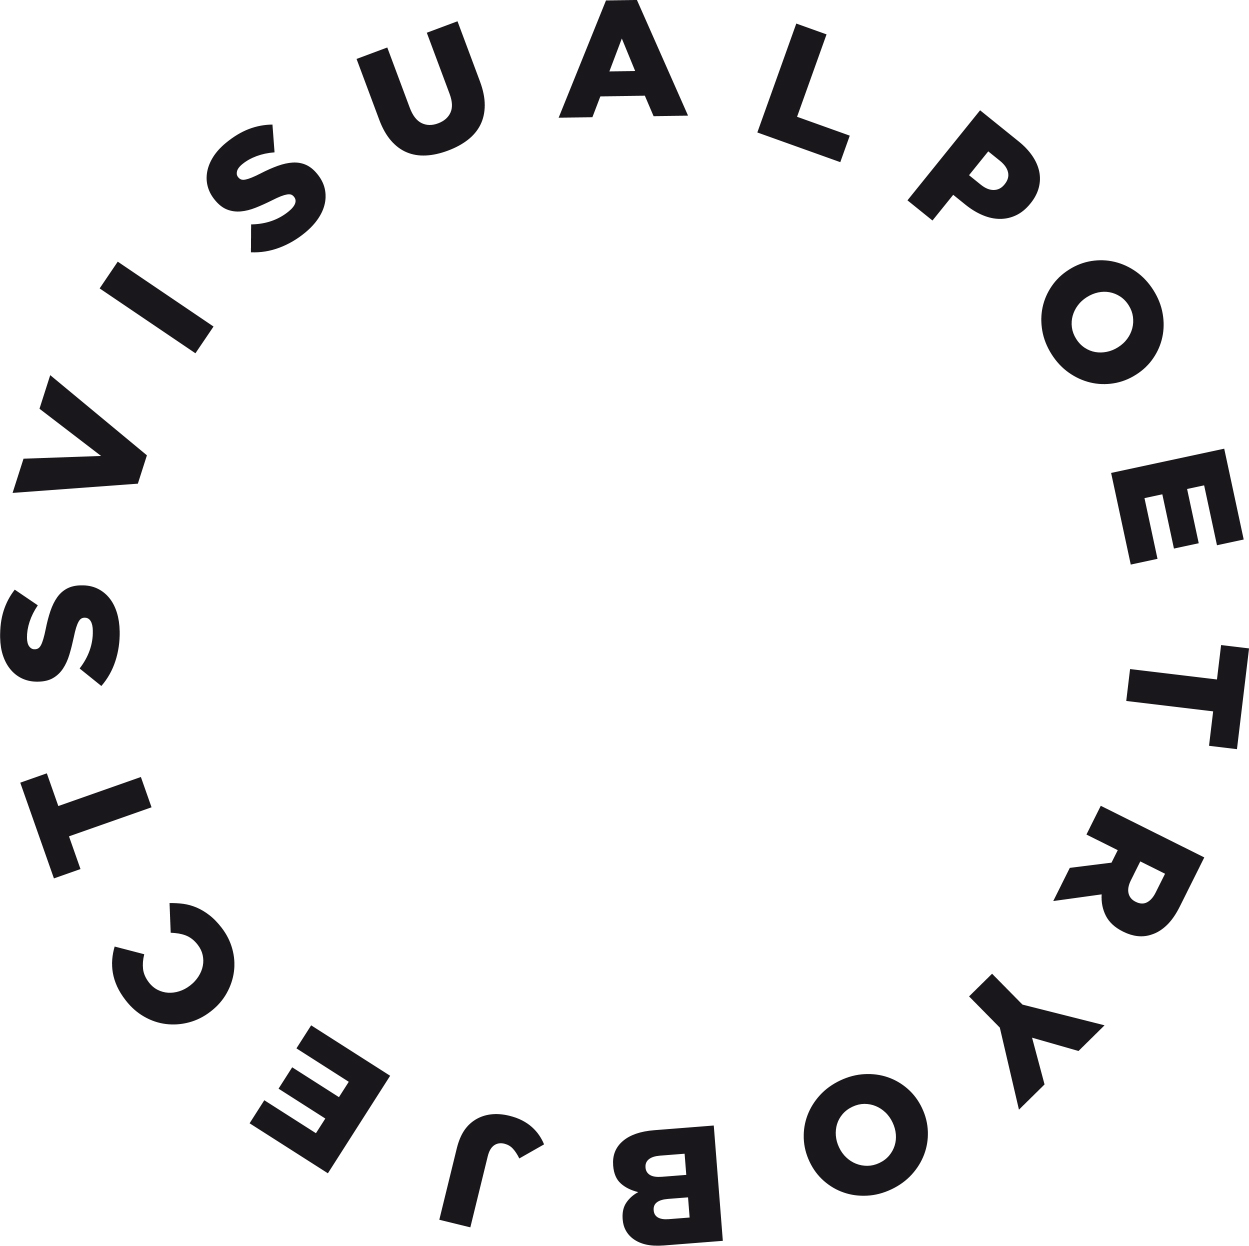 Visualpoetryobjects